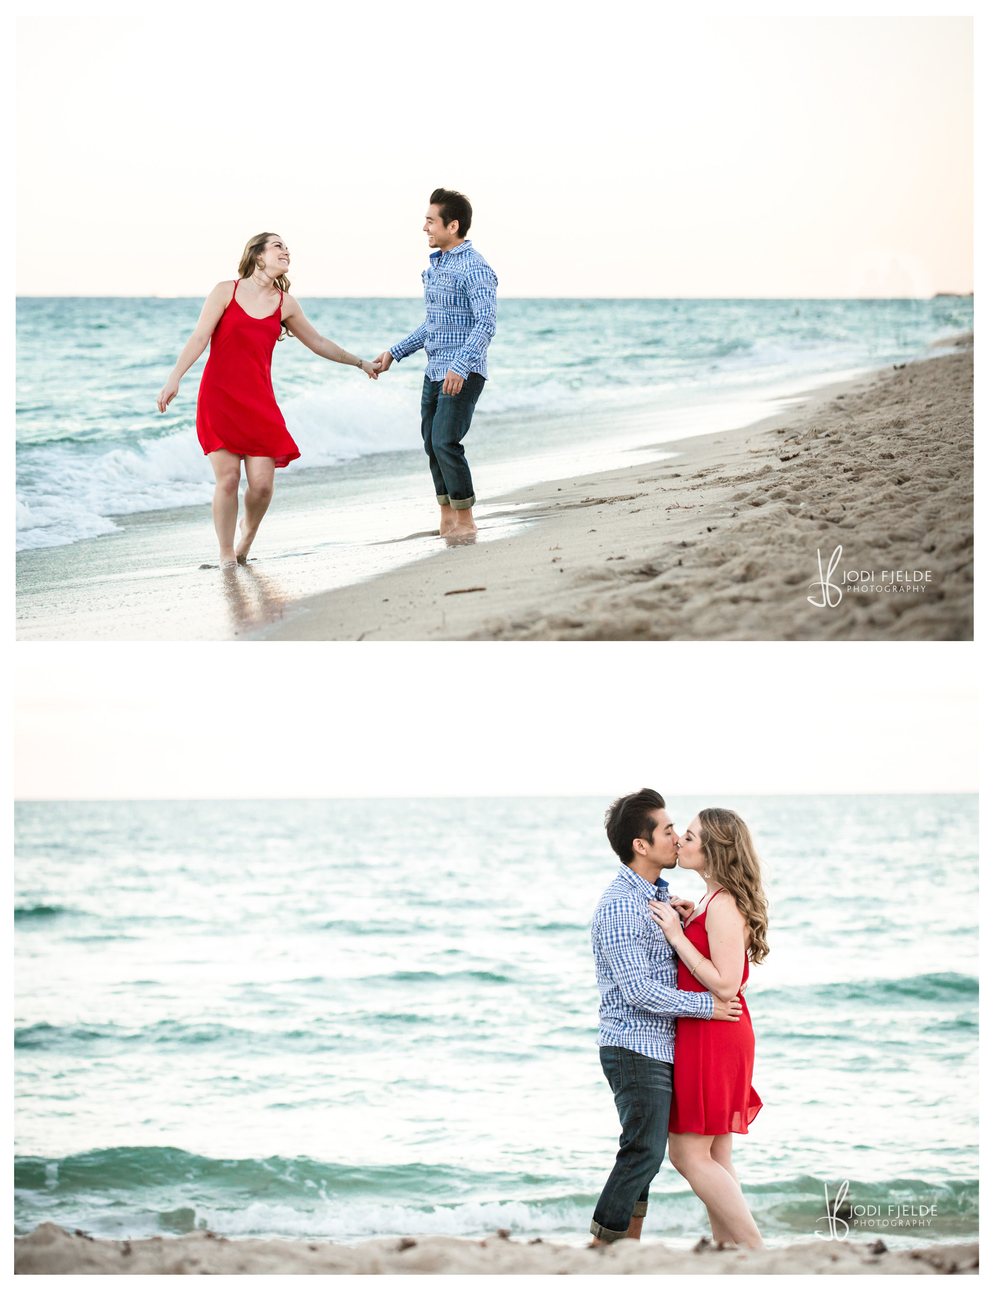 Fort_Lauderdale_engagement_session_Kelsey_Ken_Jodi_Fjelde_Photography_6.jpg